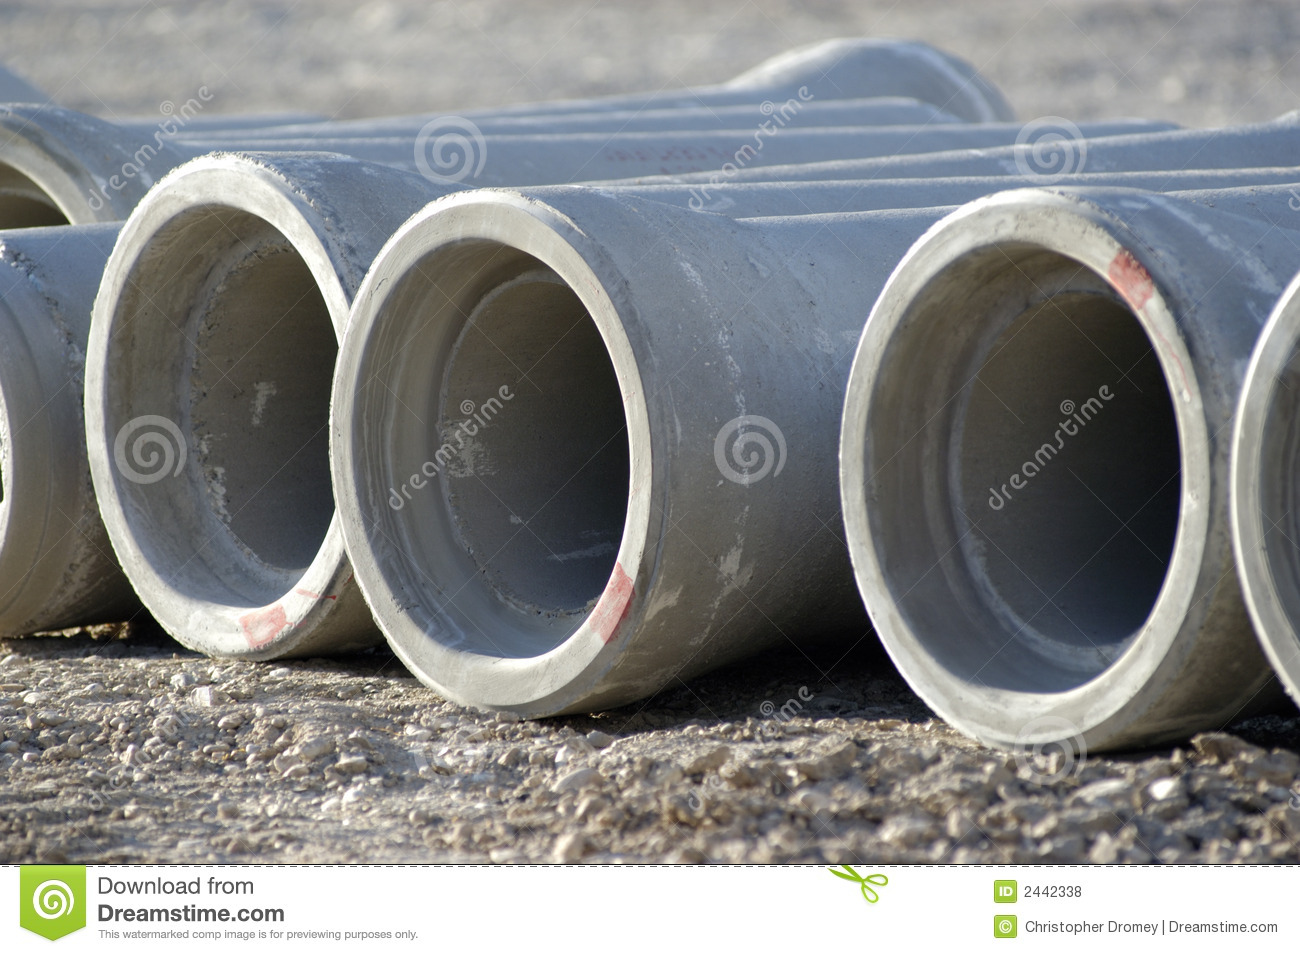 Concrete sewer pipes royalty free stock photos image 2442338